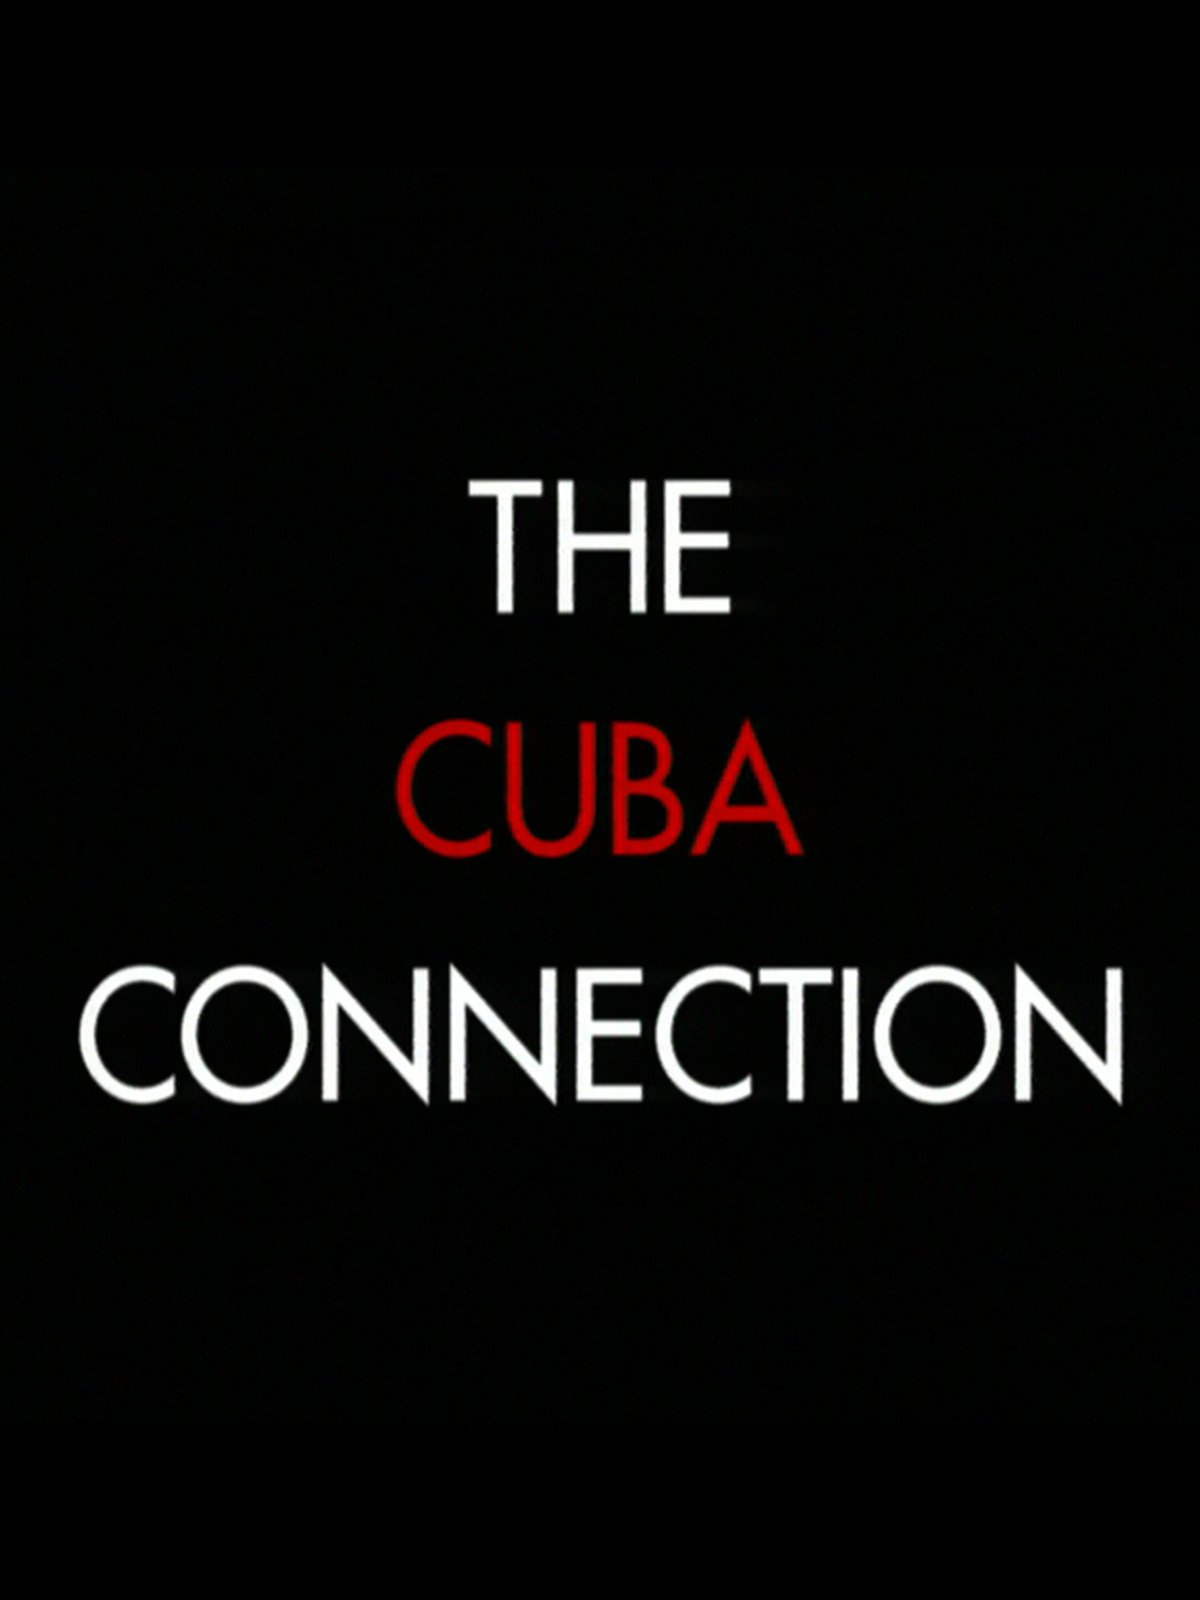 The Cuba Connection